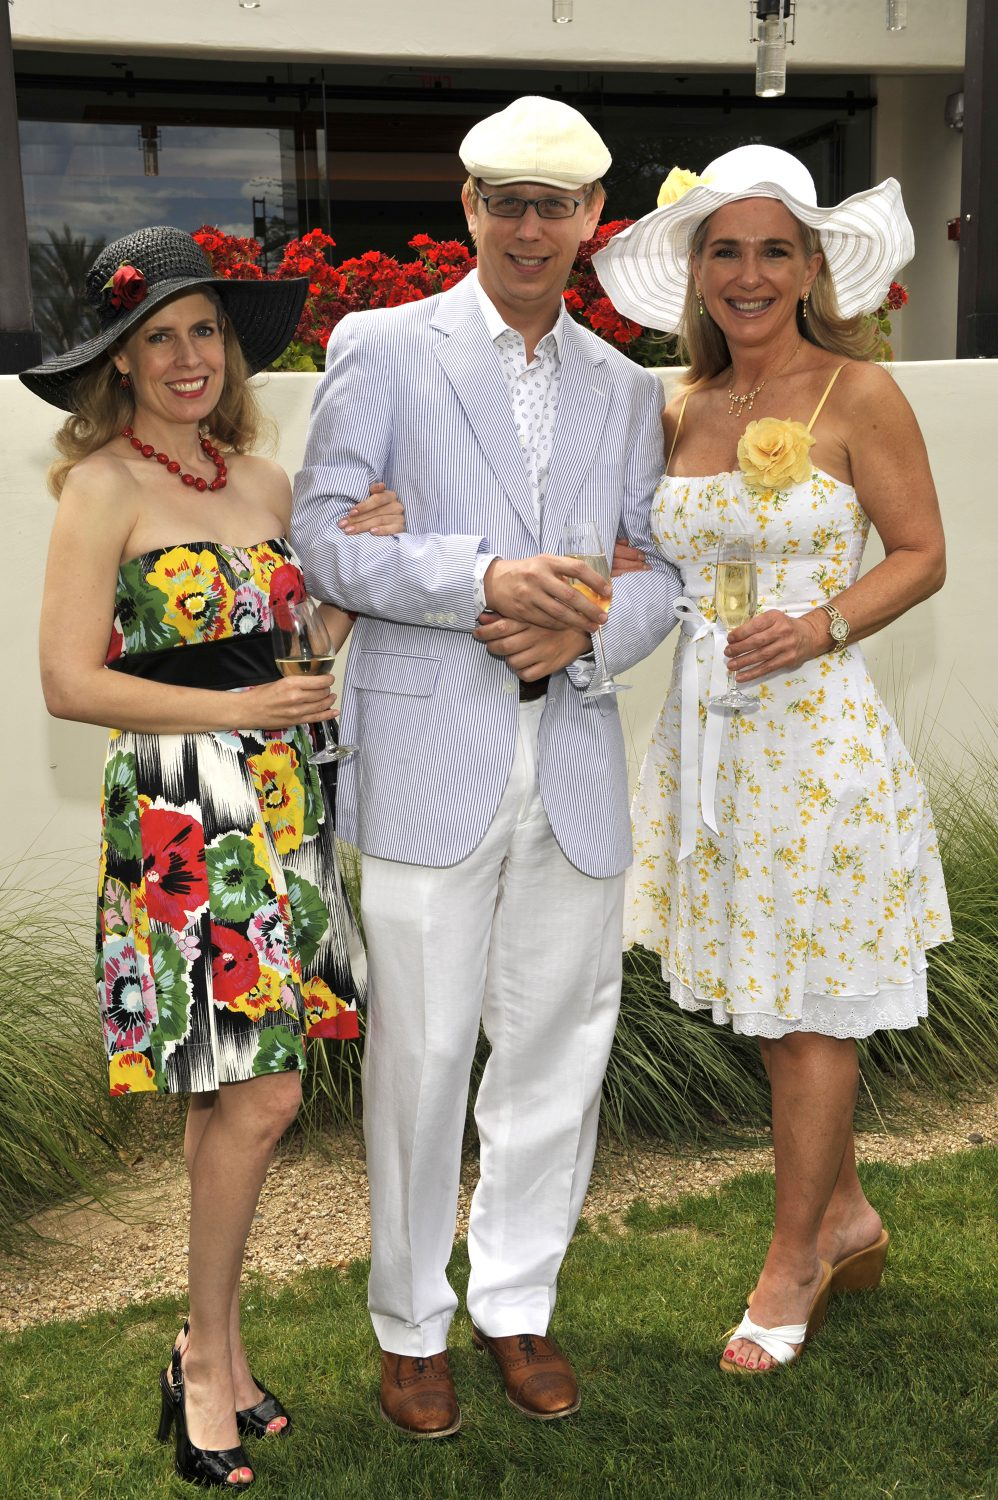 Kentucky Derby Party This Saturday The Independent Brewing Company